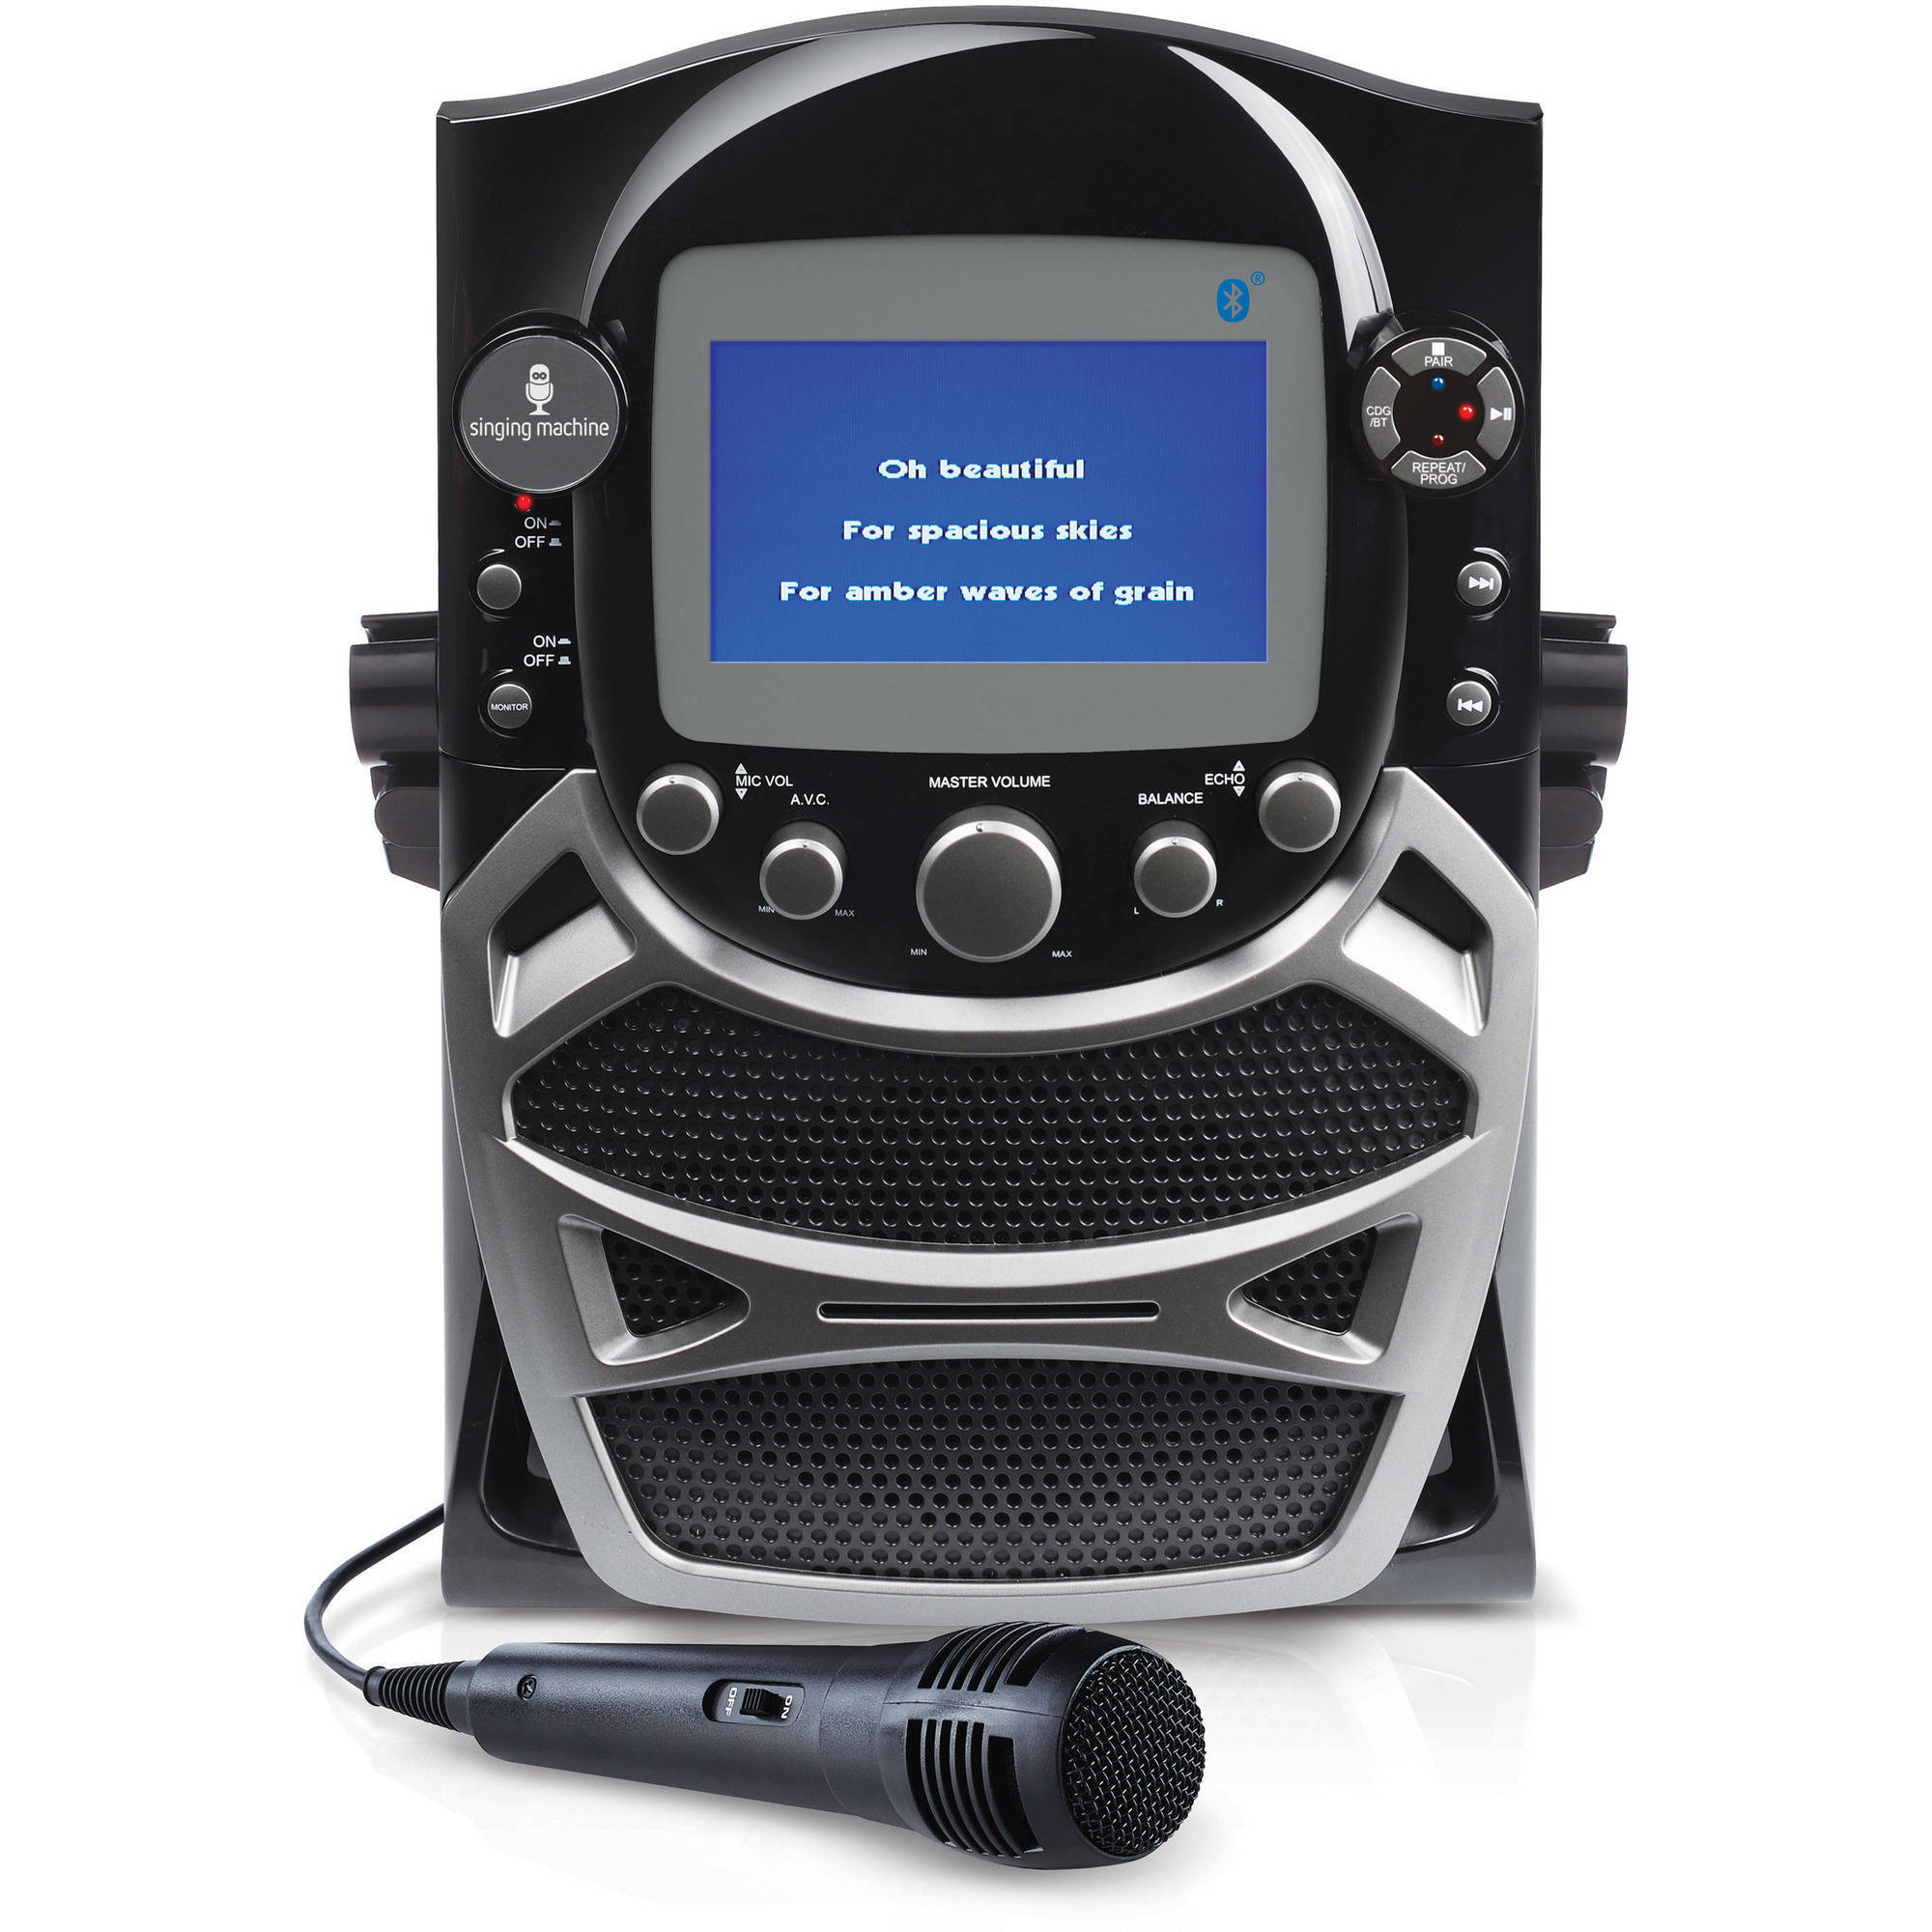 "Singing Machine CD G Karaoke Bluetooth System with Built-In 5"" Color TFT Monitor and Microphone"